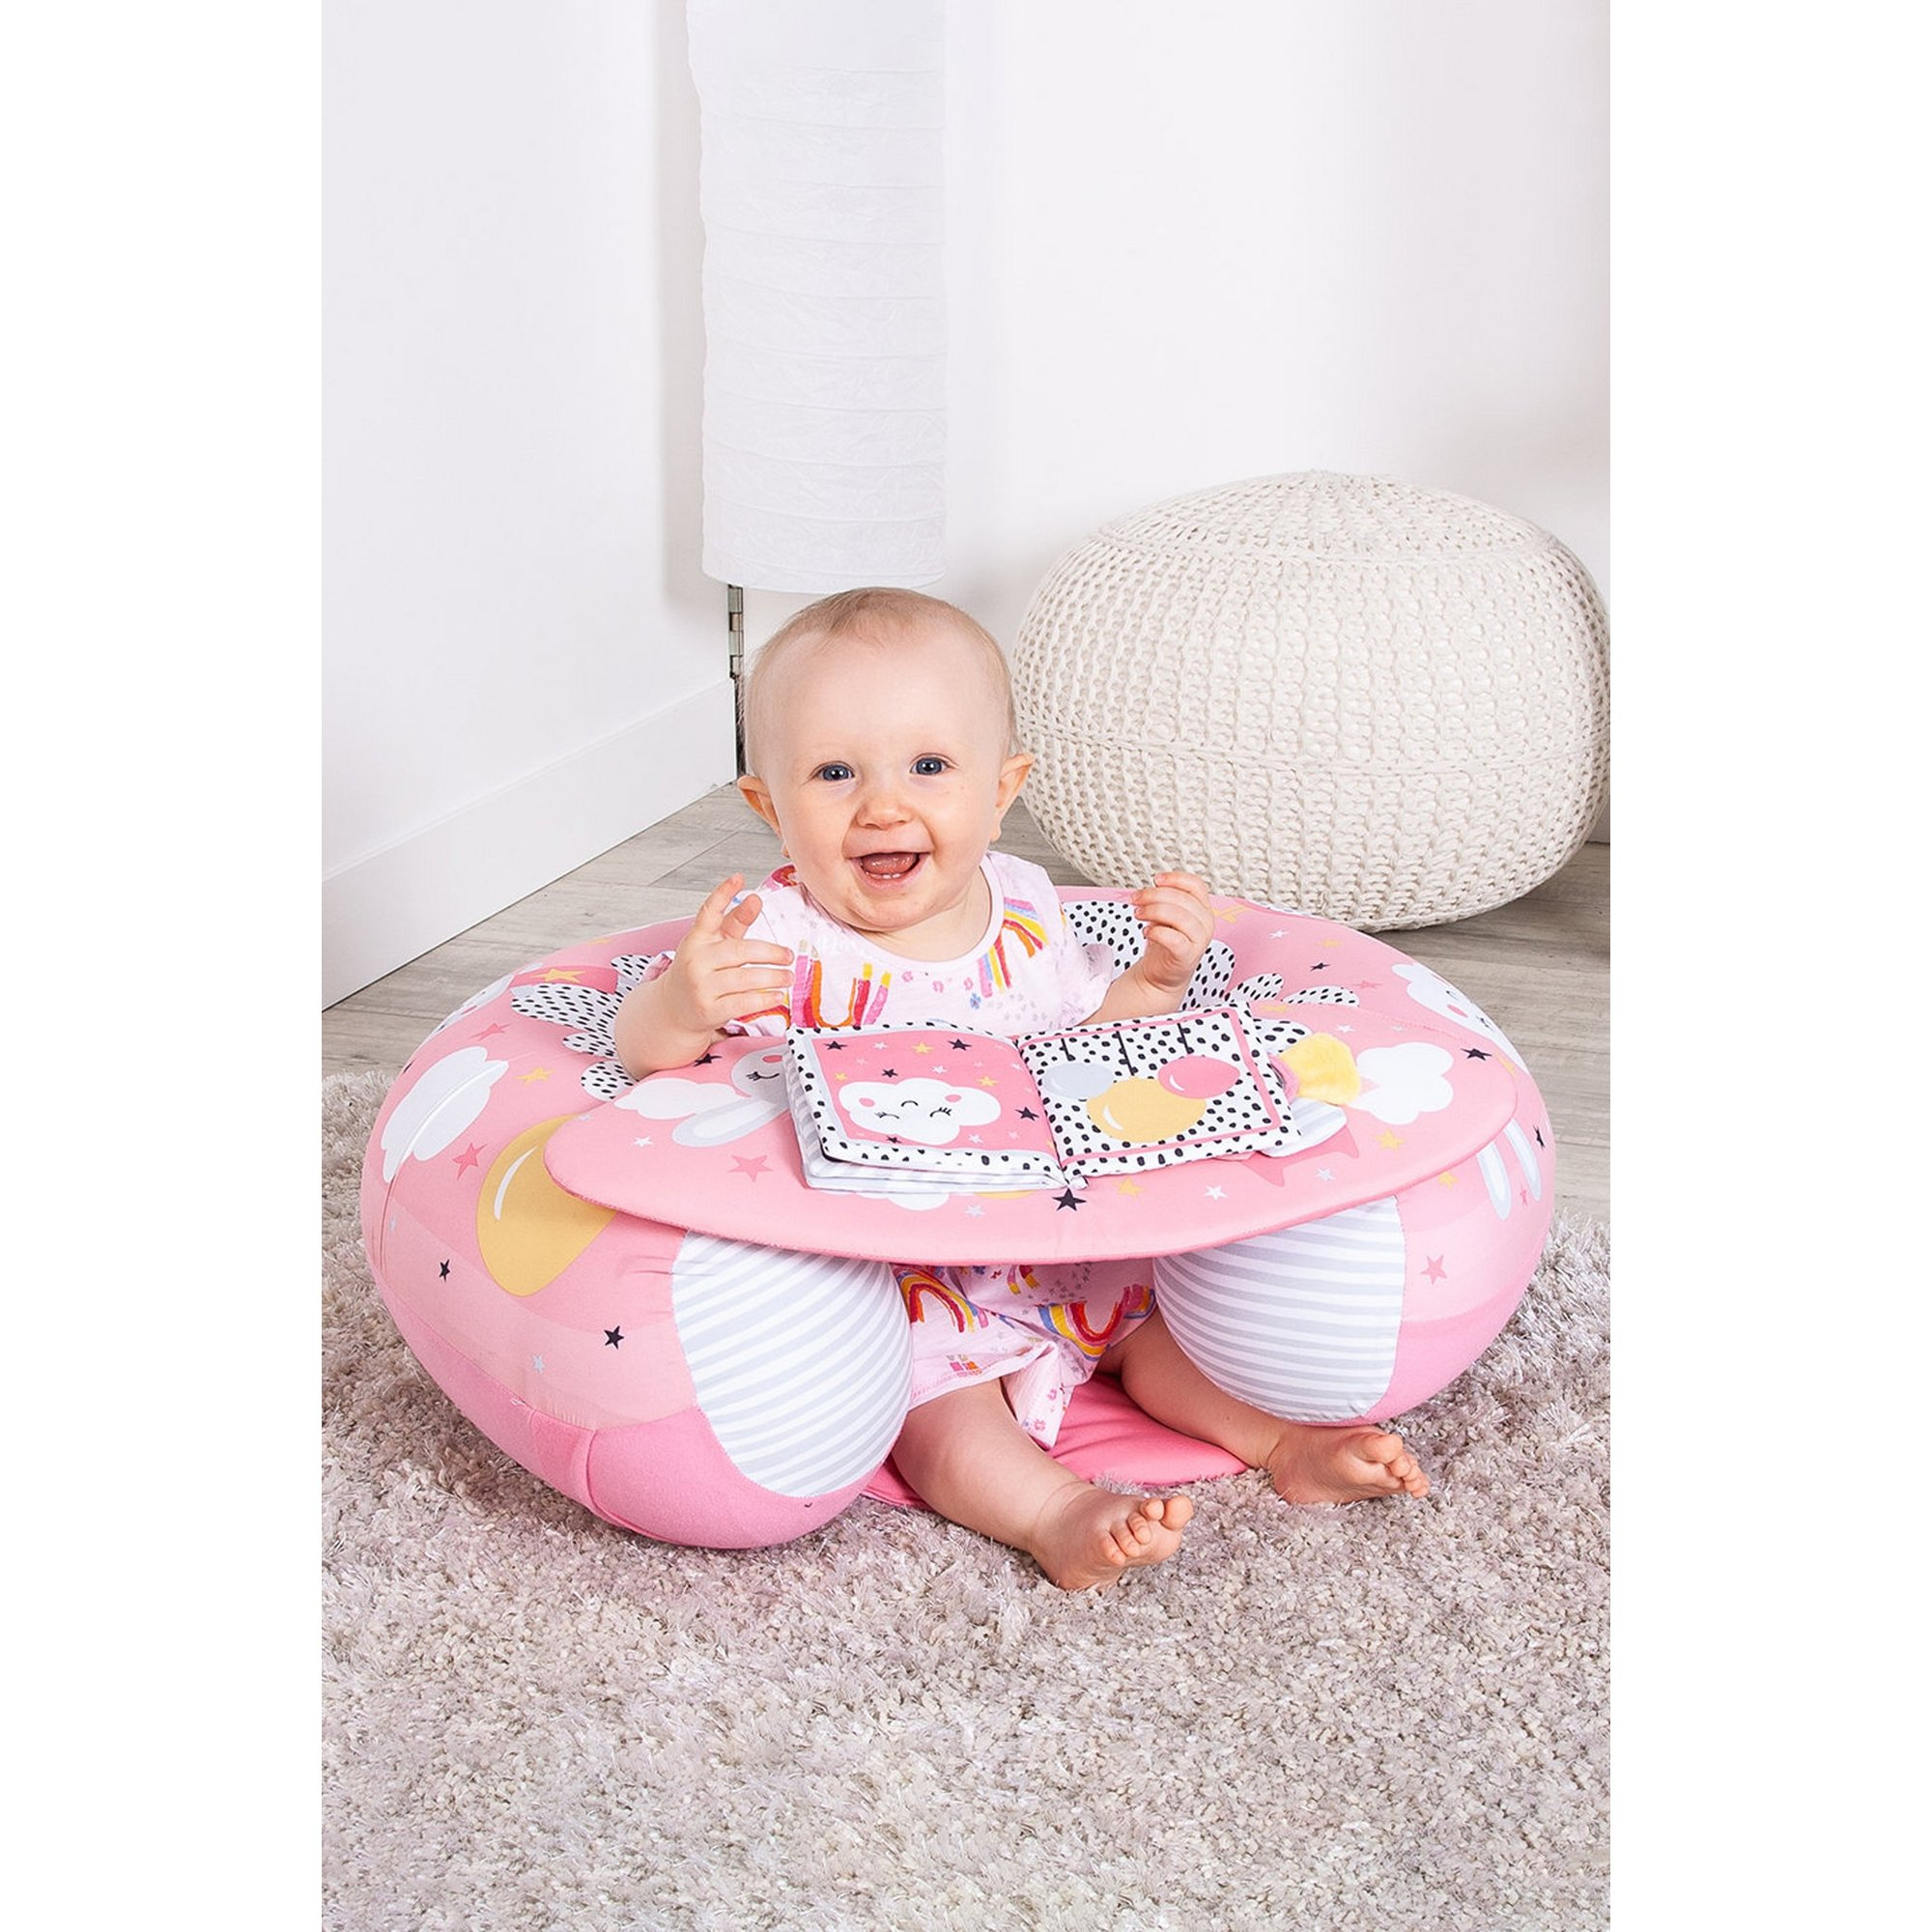 Image of Red Kite Dreamy Meadow Sit Me Up Activity Baby Play Ring